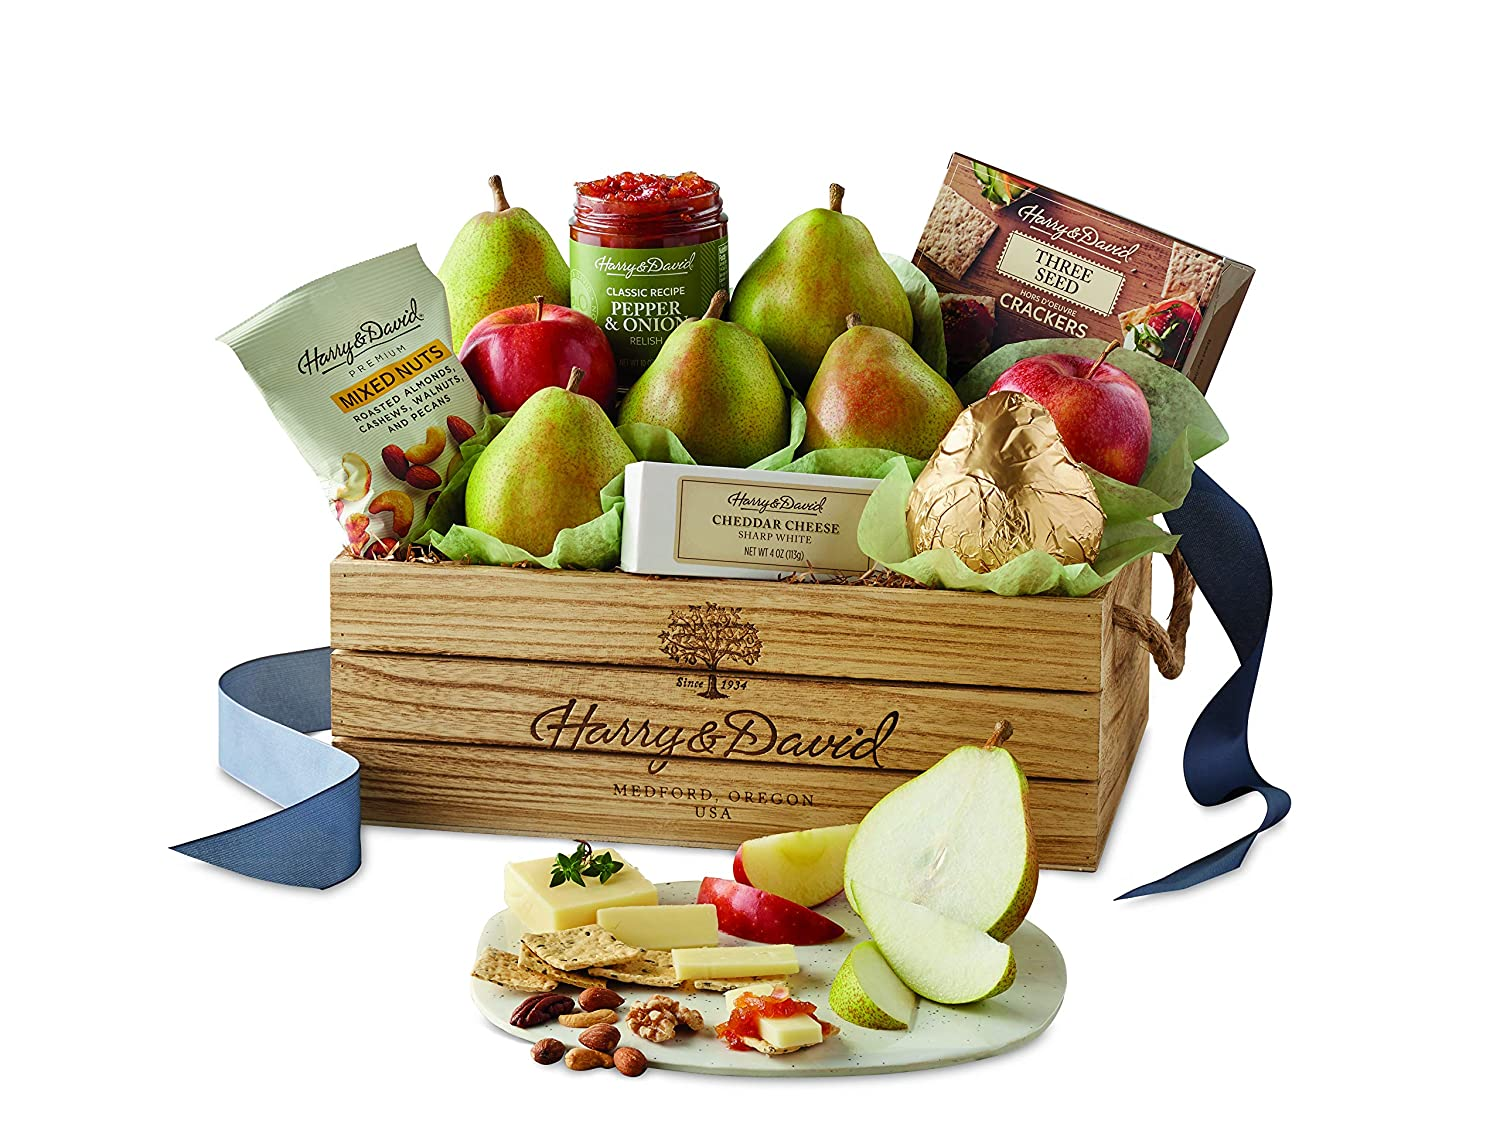 Amazon.com : Harry & David Classic Signature Pear, Nut, and Cheese Gift Basket : Grocery & Gourmet Food